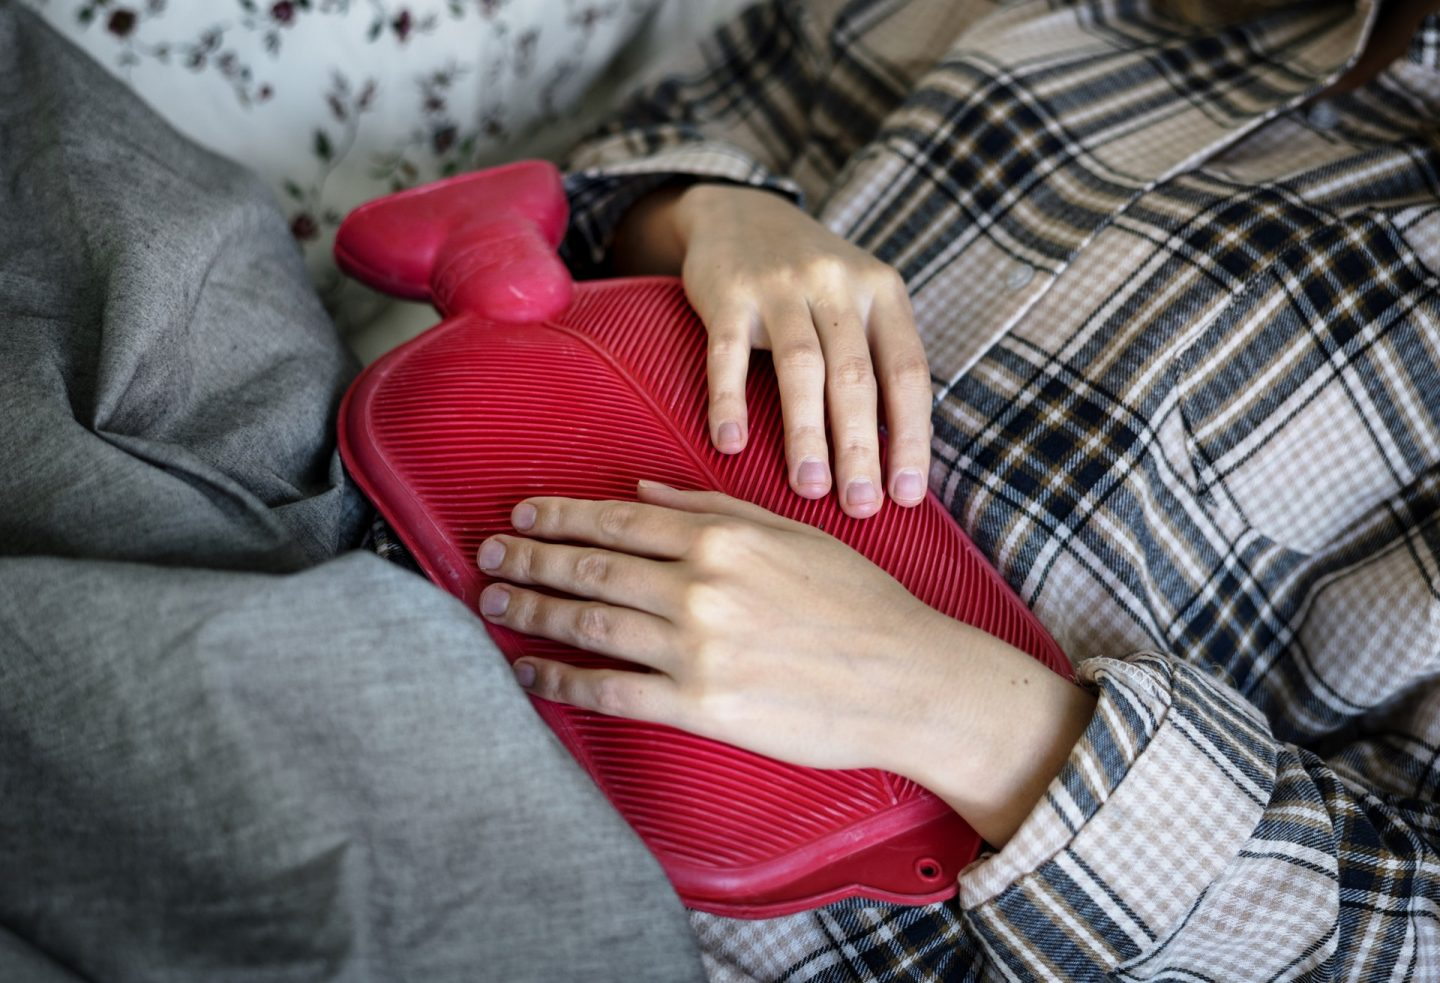 PCOS: Woman in pyjamas holding red hot water bottle on her stomach.